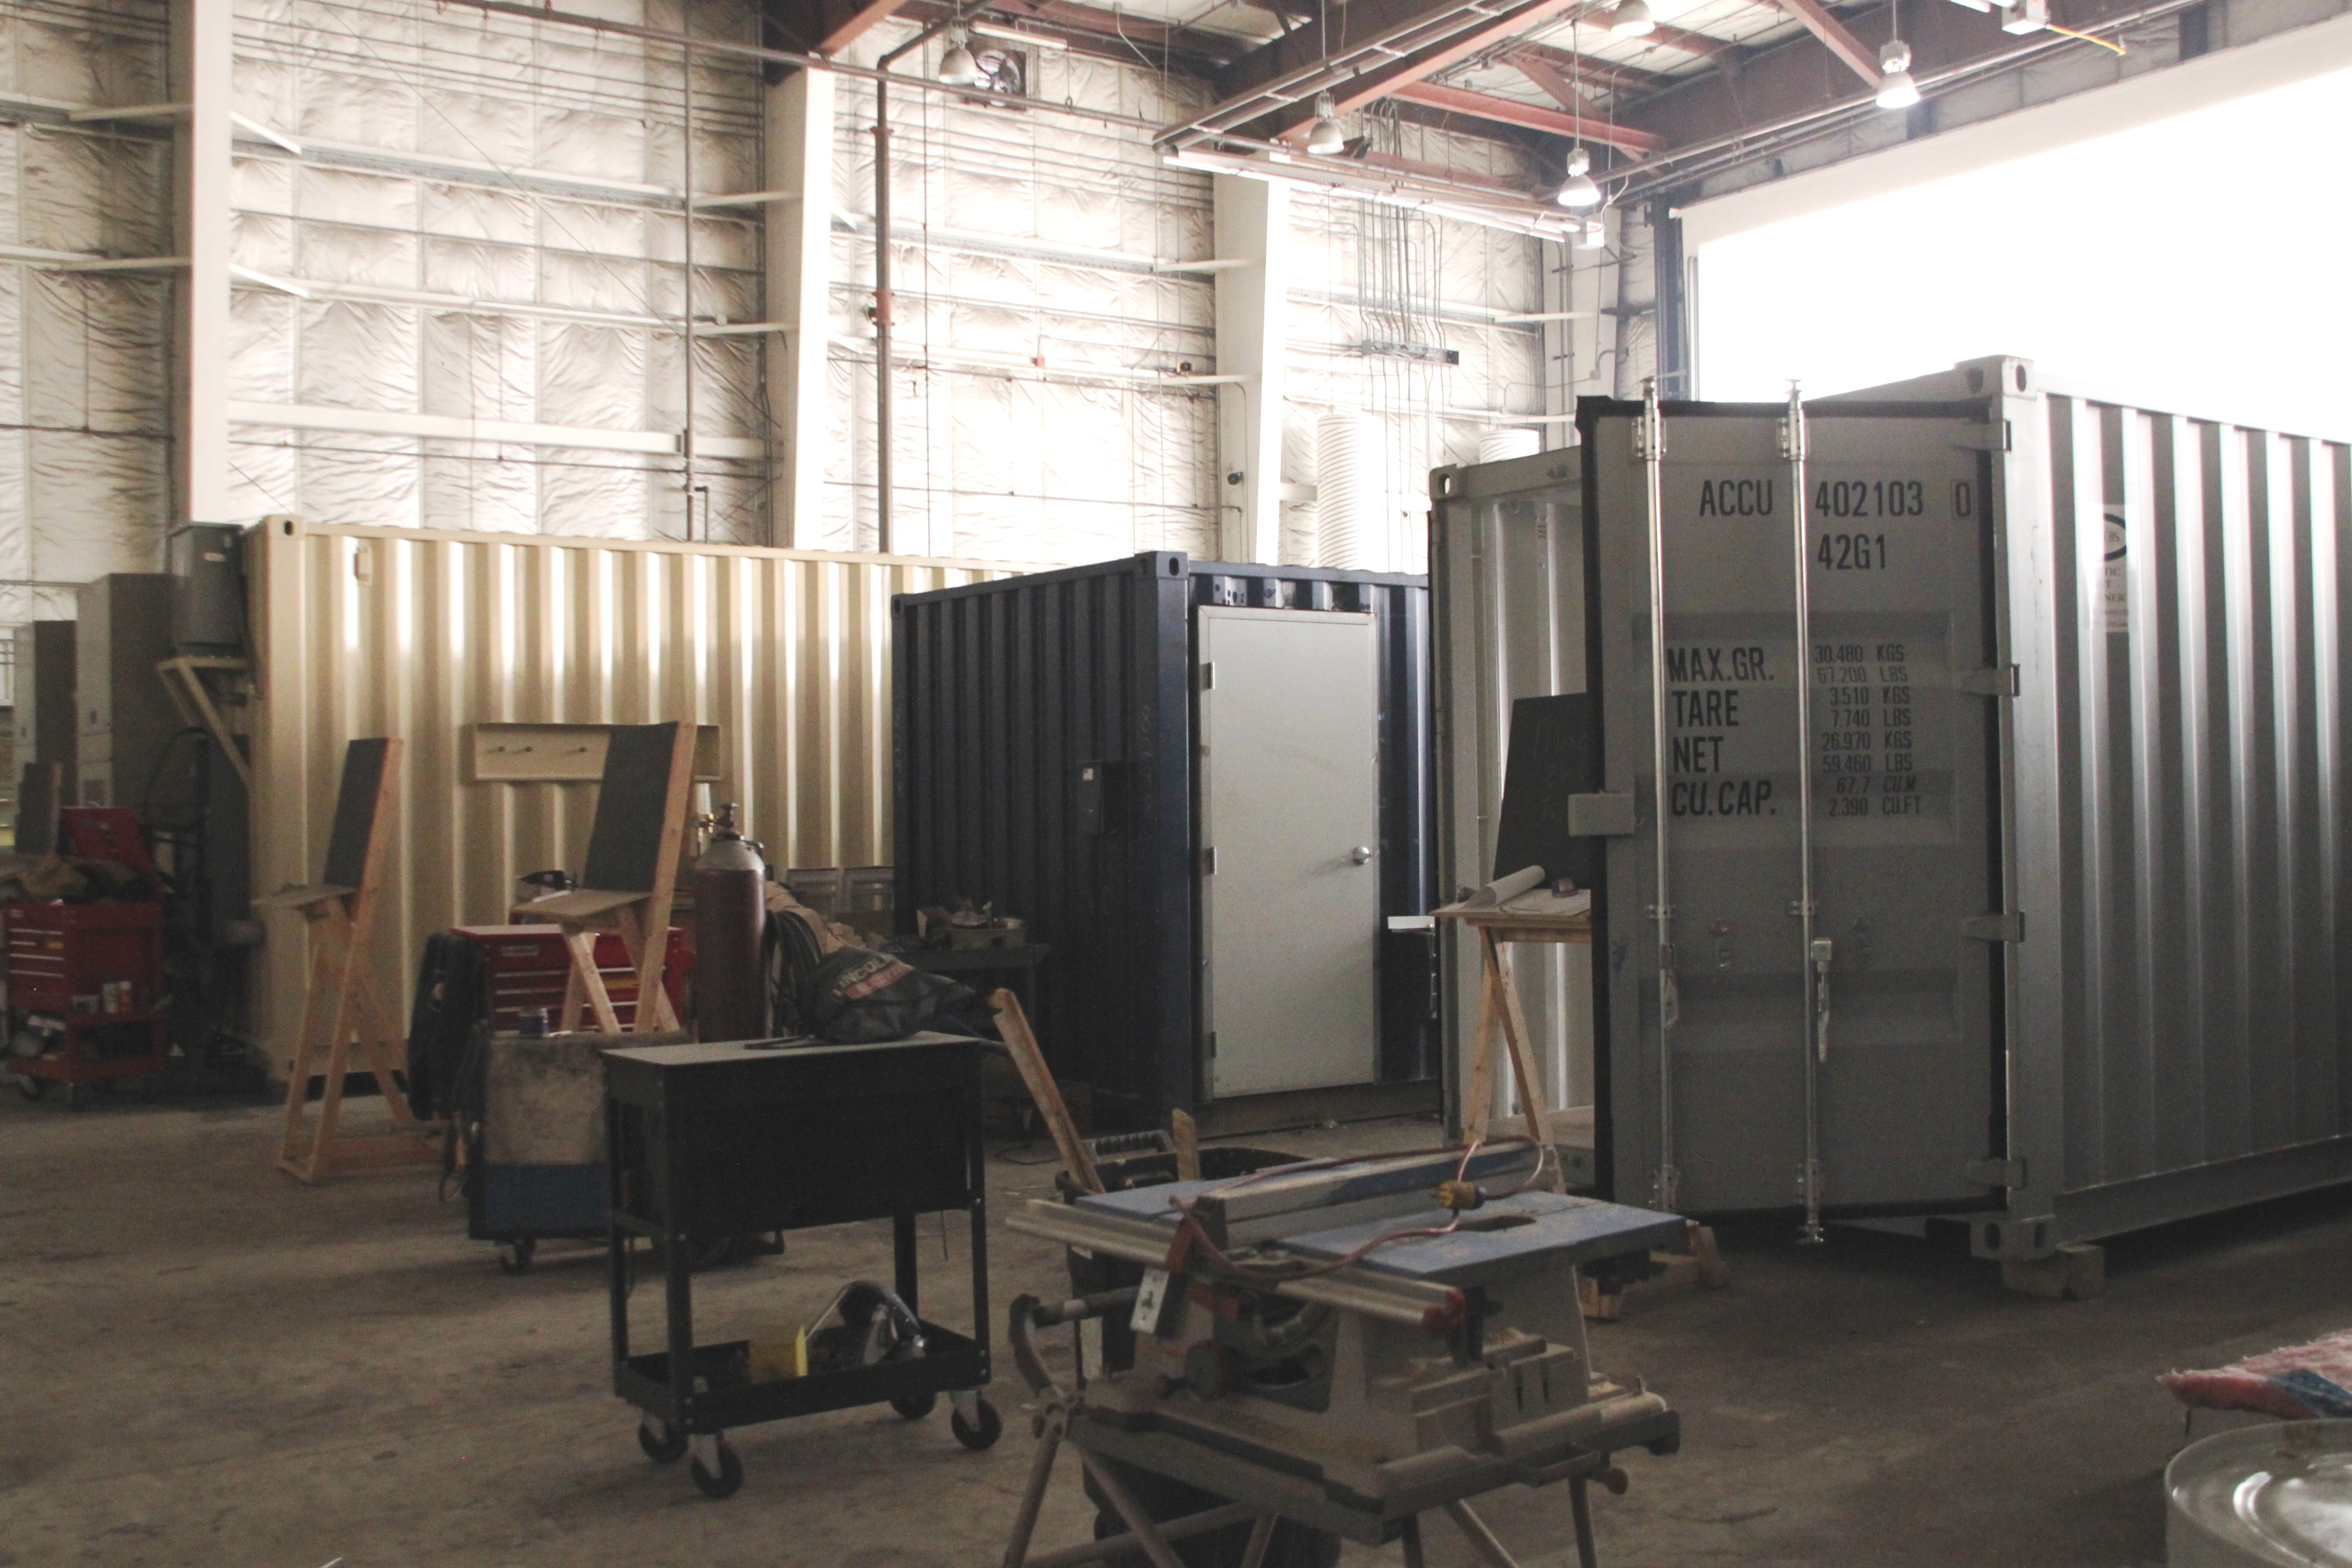 shipping container modification, ISO Shipping container modifications, DropBox Inc, shipping container modifications, milvan modification, connex container modification, ISO shipping container modification, storage container modification, storage container modifications